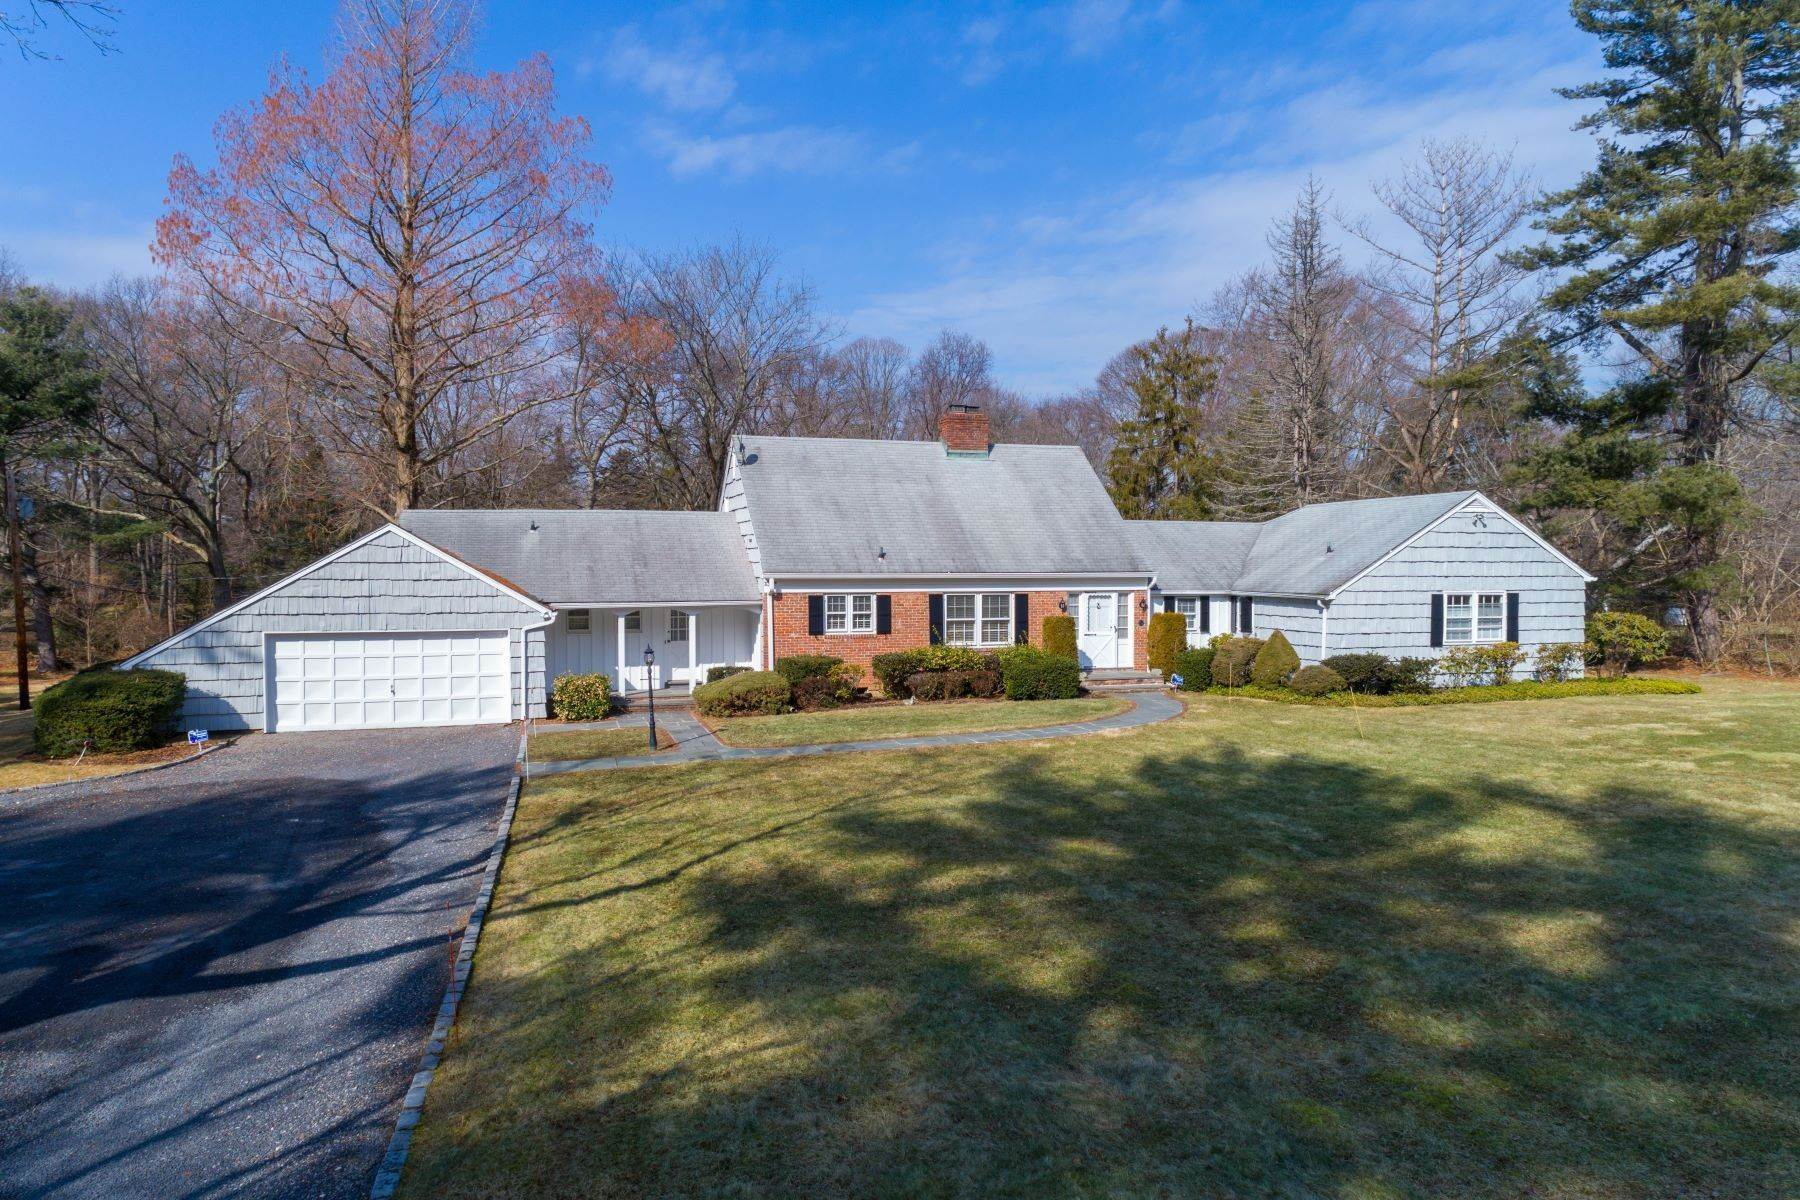 Single Family Homes for Sale at 7 Dogwood Hl, Brookville, Ny, 11545 7 Dogwood Hl Brookville, New York 11545 United States